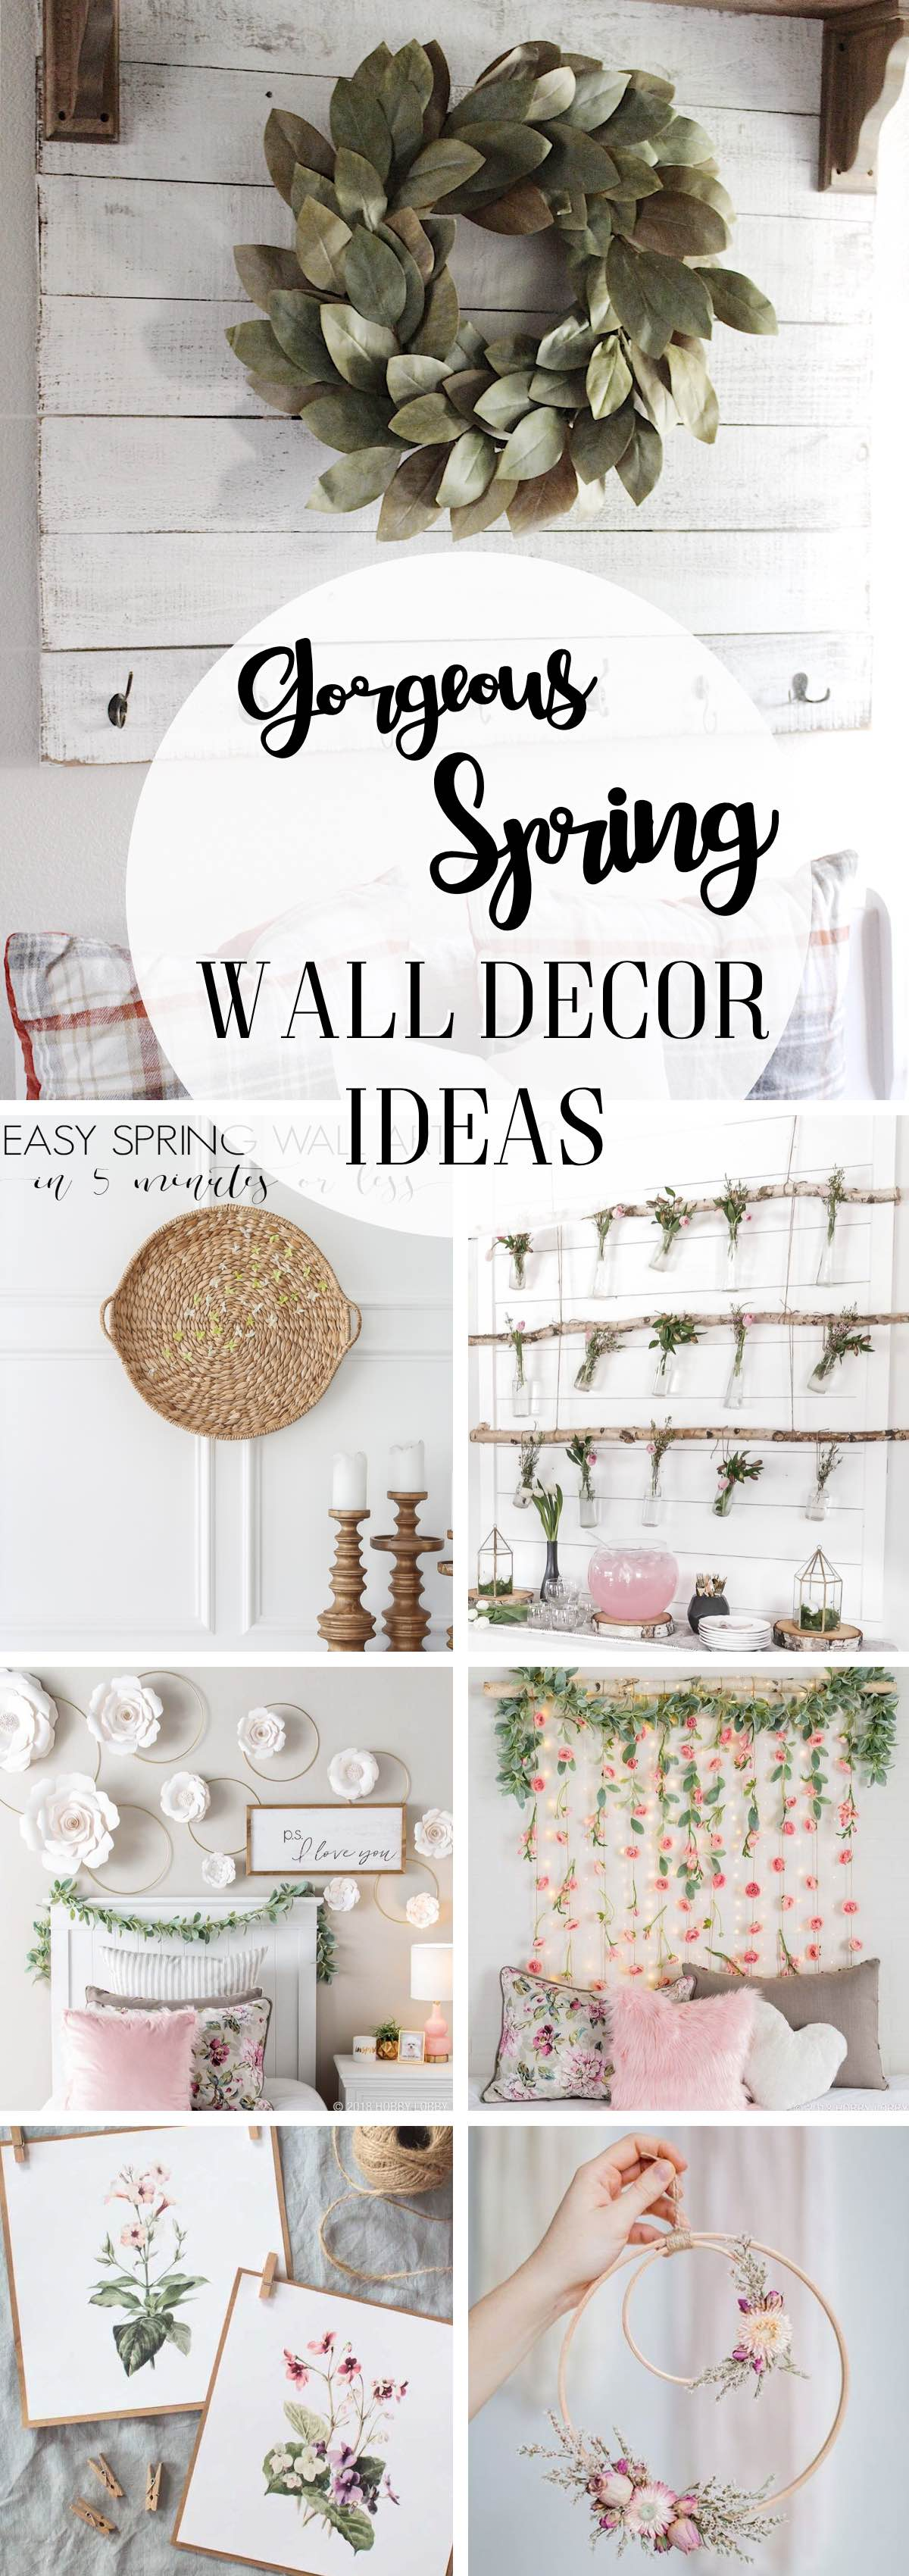 18 Gorgeous Spring Wall Decor Ideas All About the Magic of Blooms!